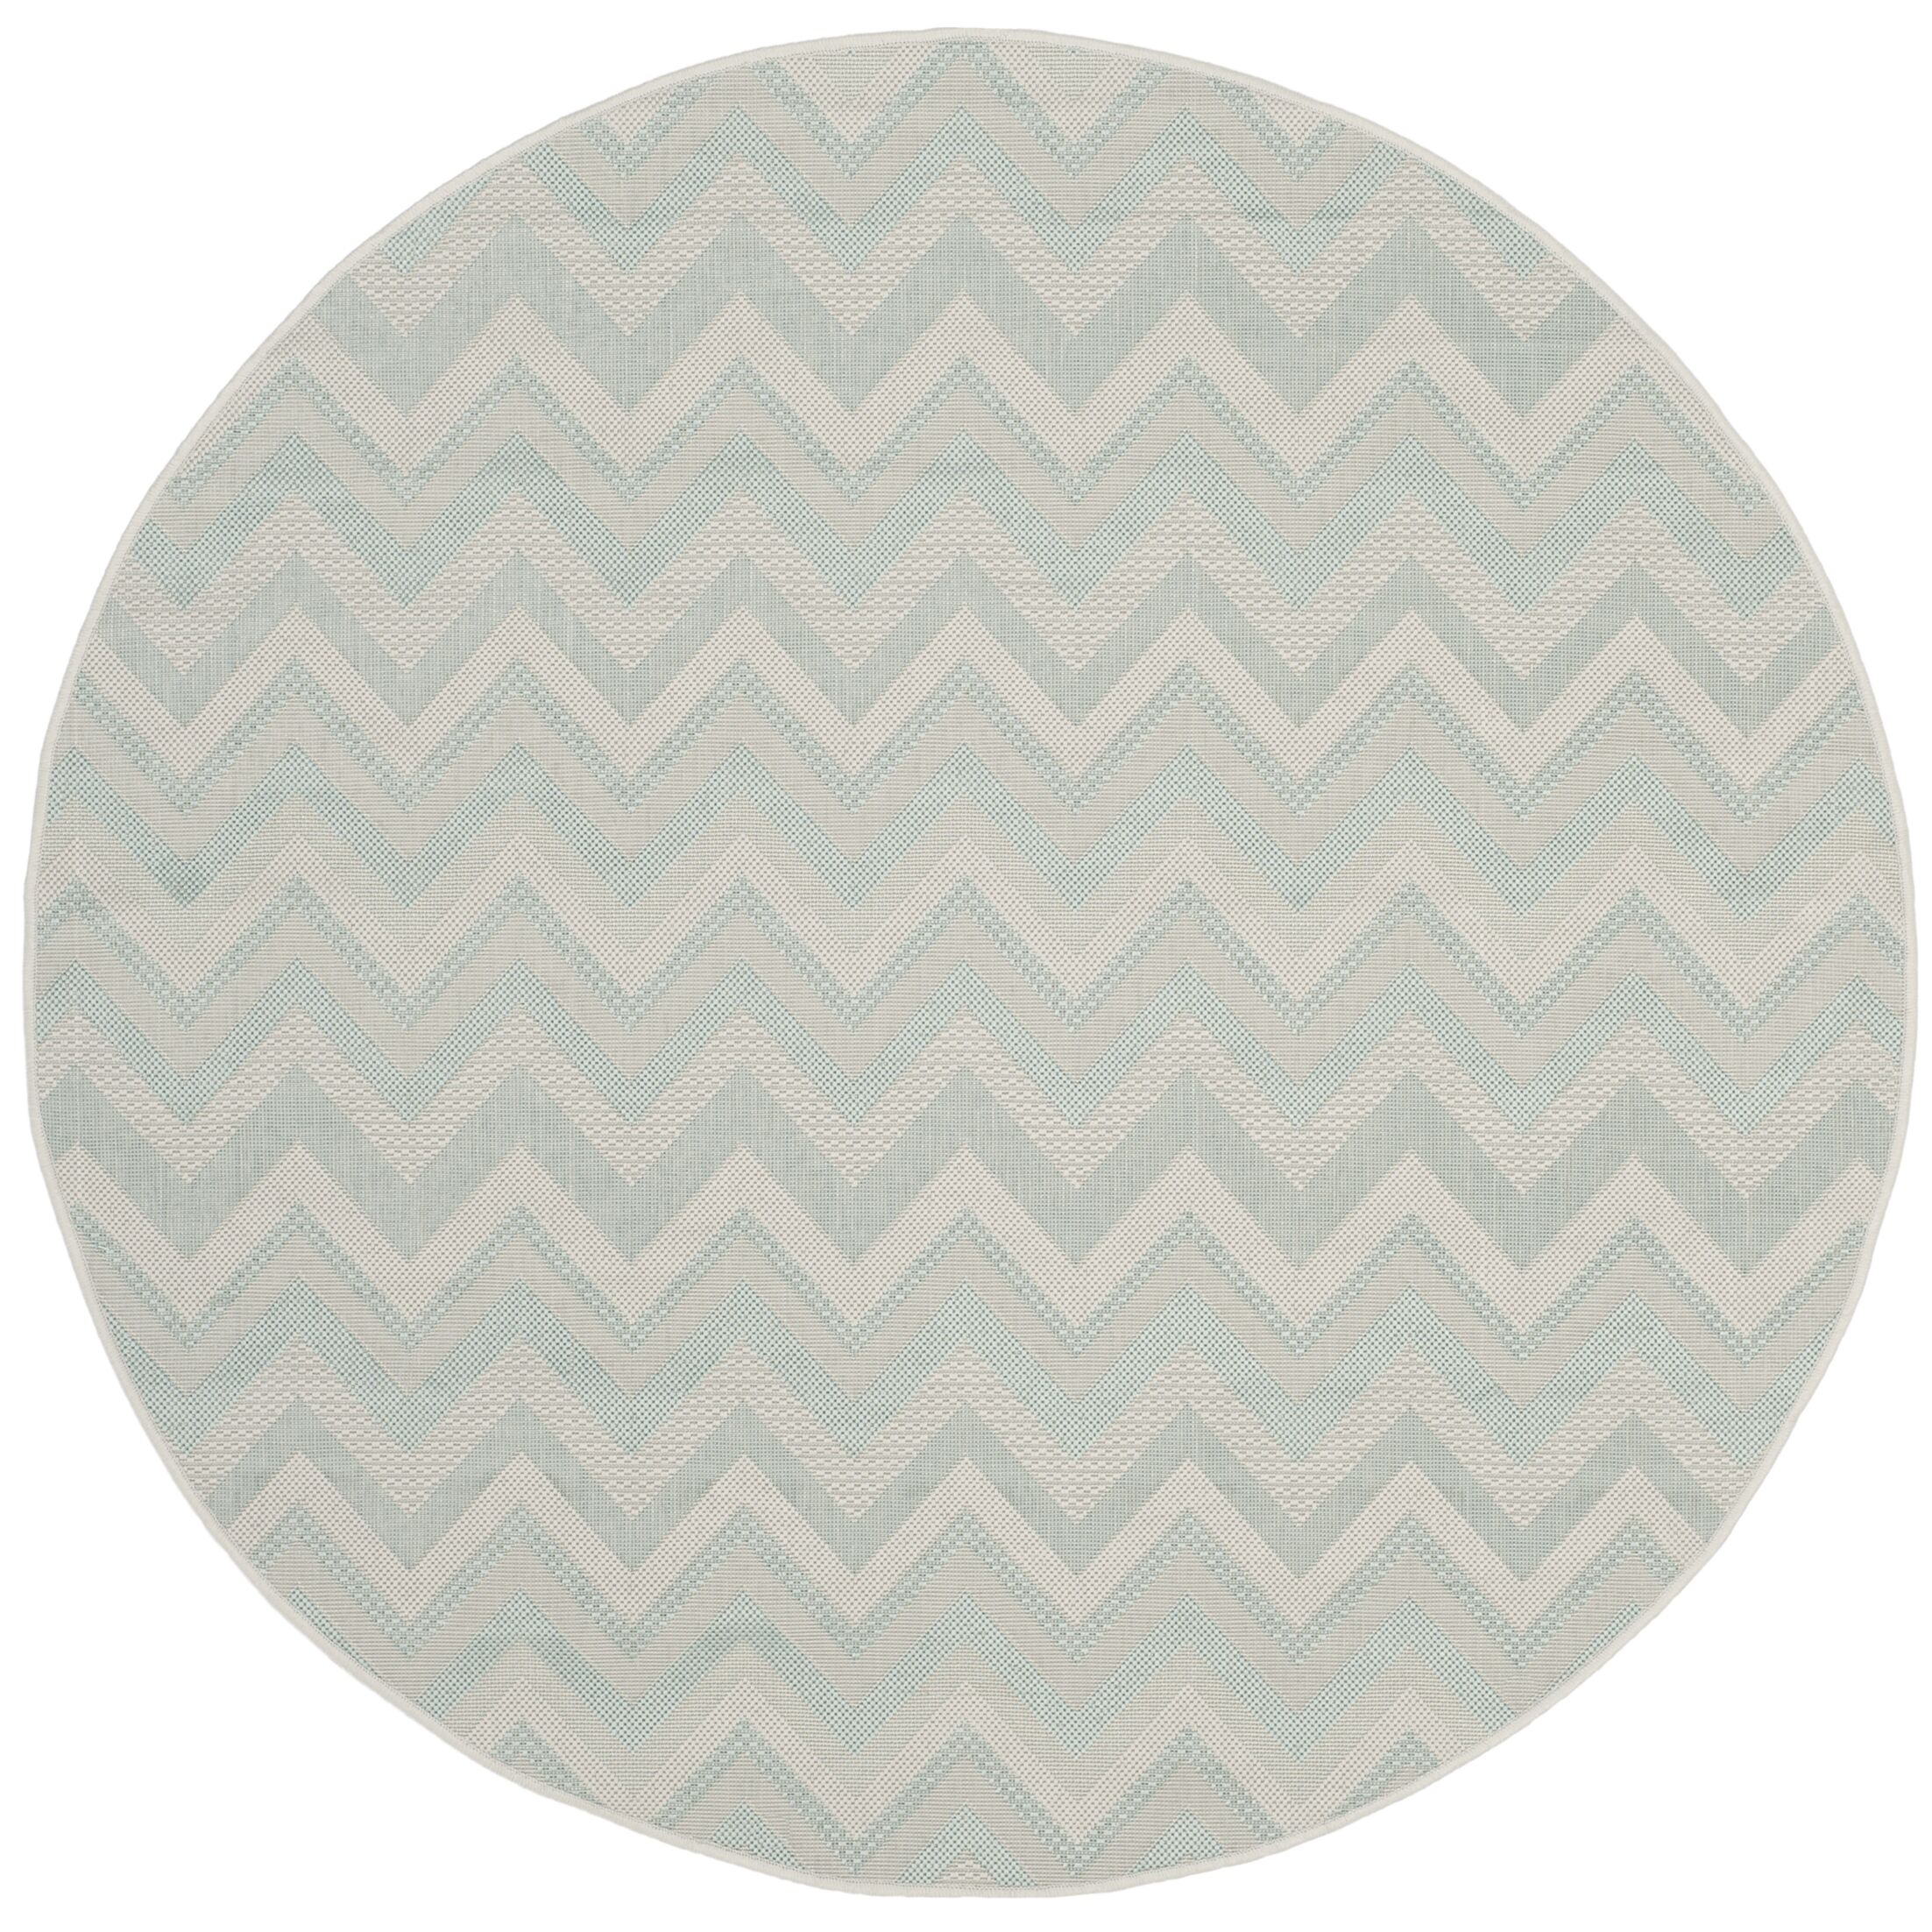 Mcguffin Light Gray/Aqua Indoor/Outdoor Area Rug Rug Size: Rectangle 6'7